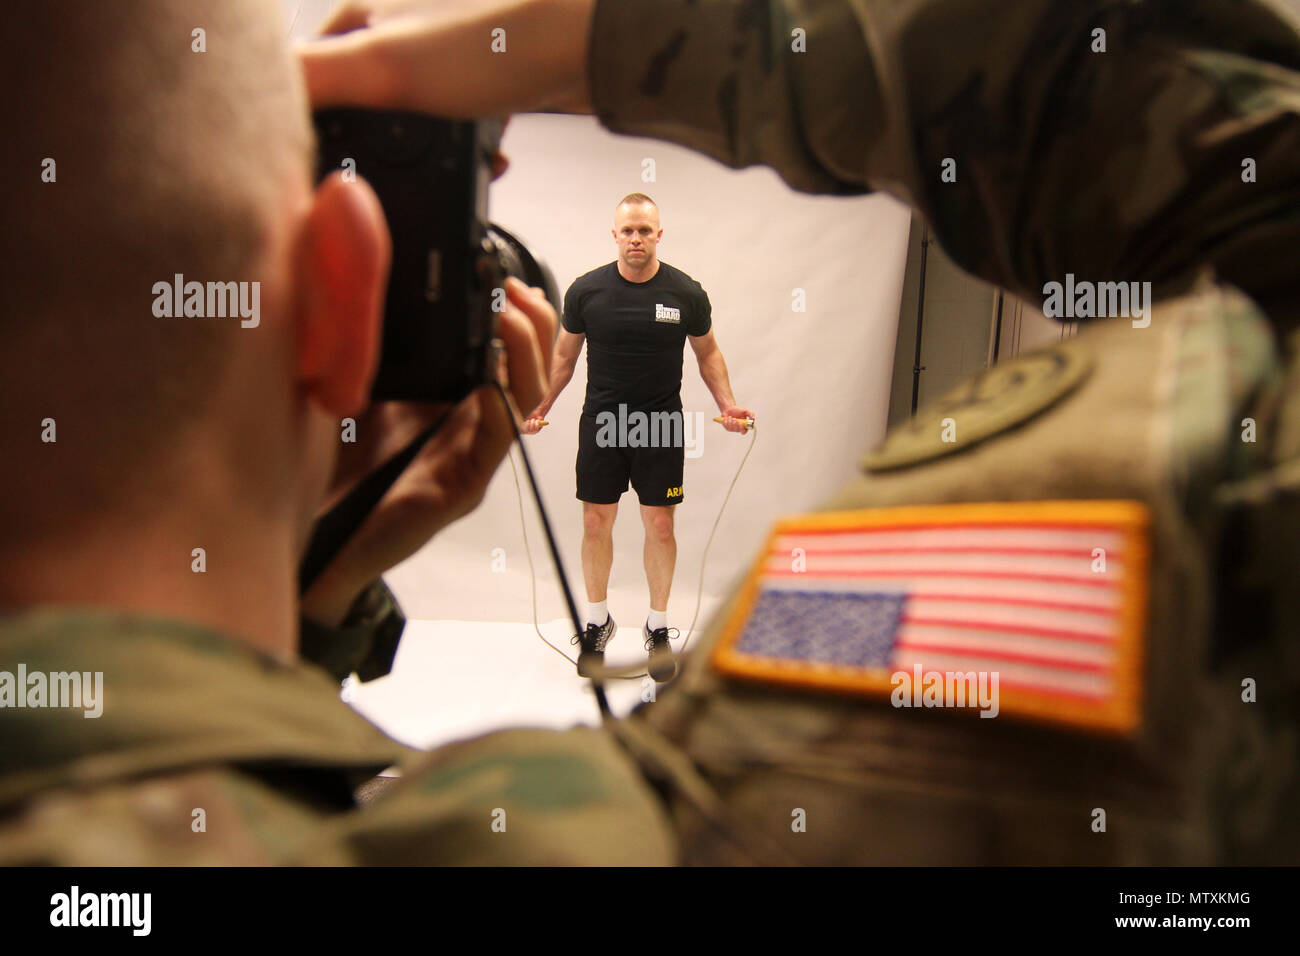 Retention Nco Stock Photos Retention Nco Stock Images Alamy